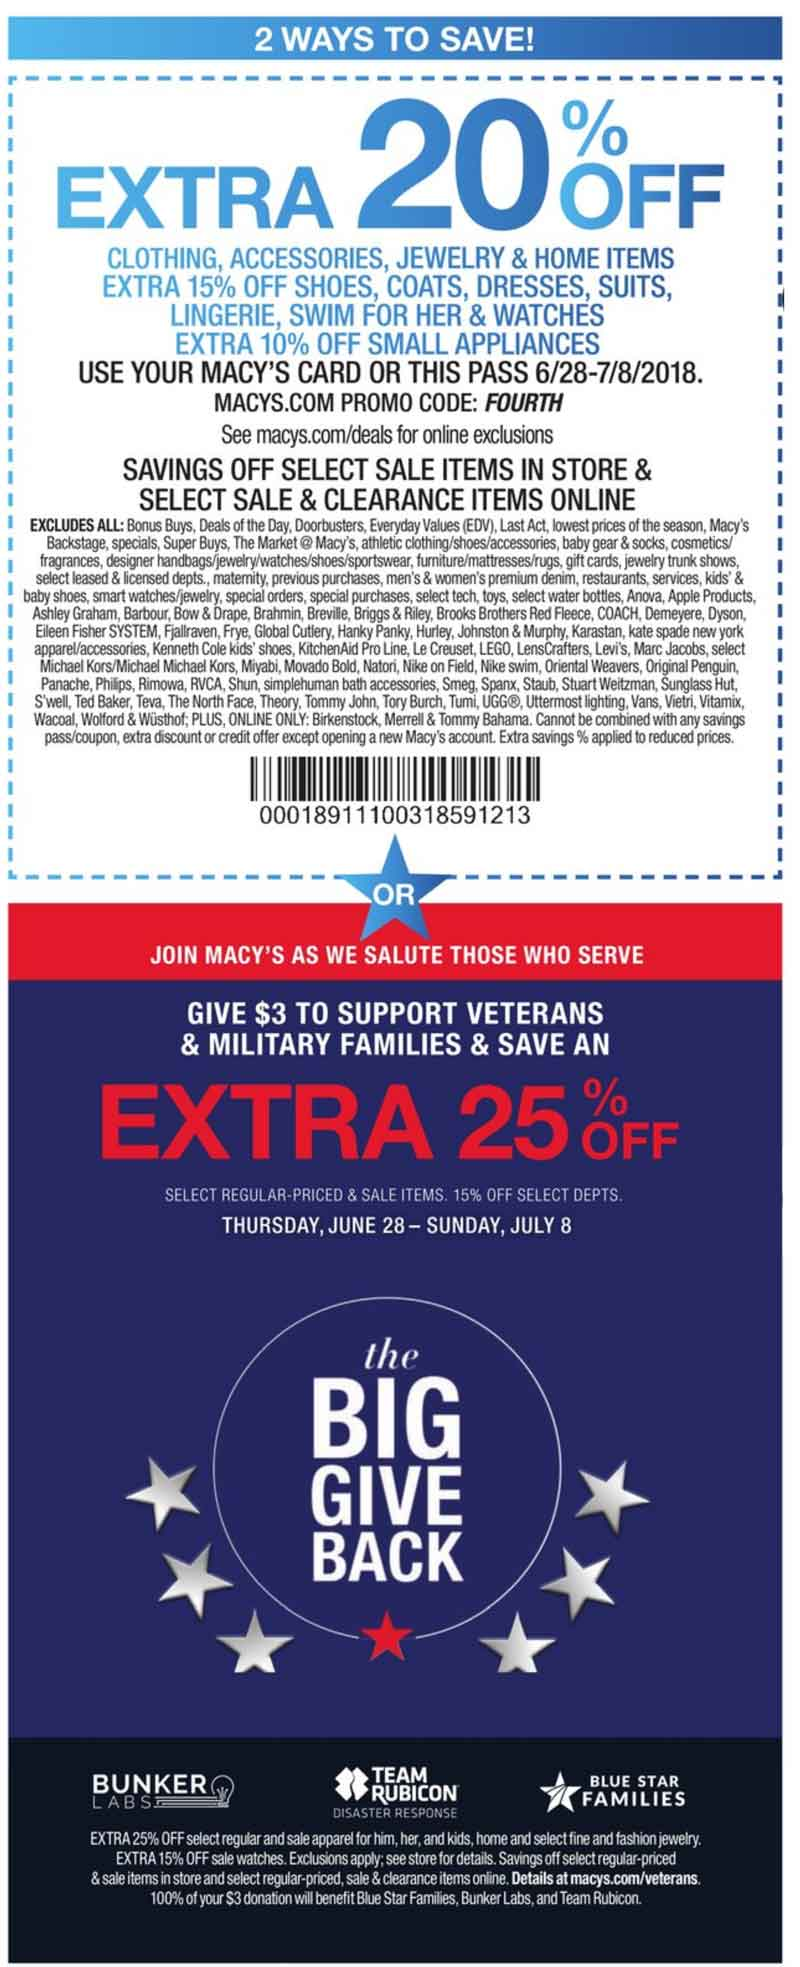 Macys Coupon August 2018 Extra 20% off at Macys, or online via promo code FOURTH